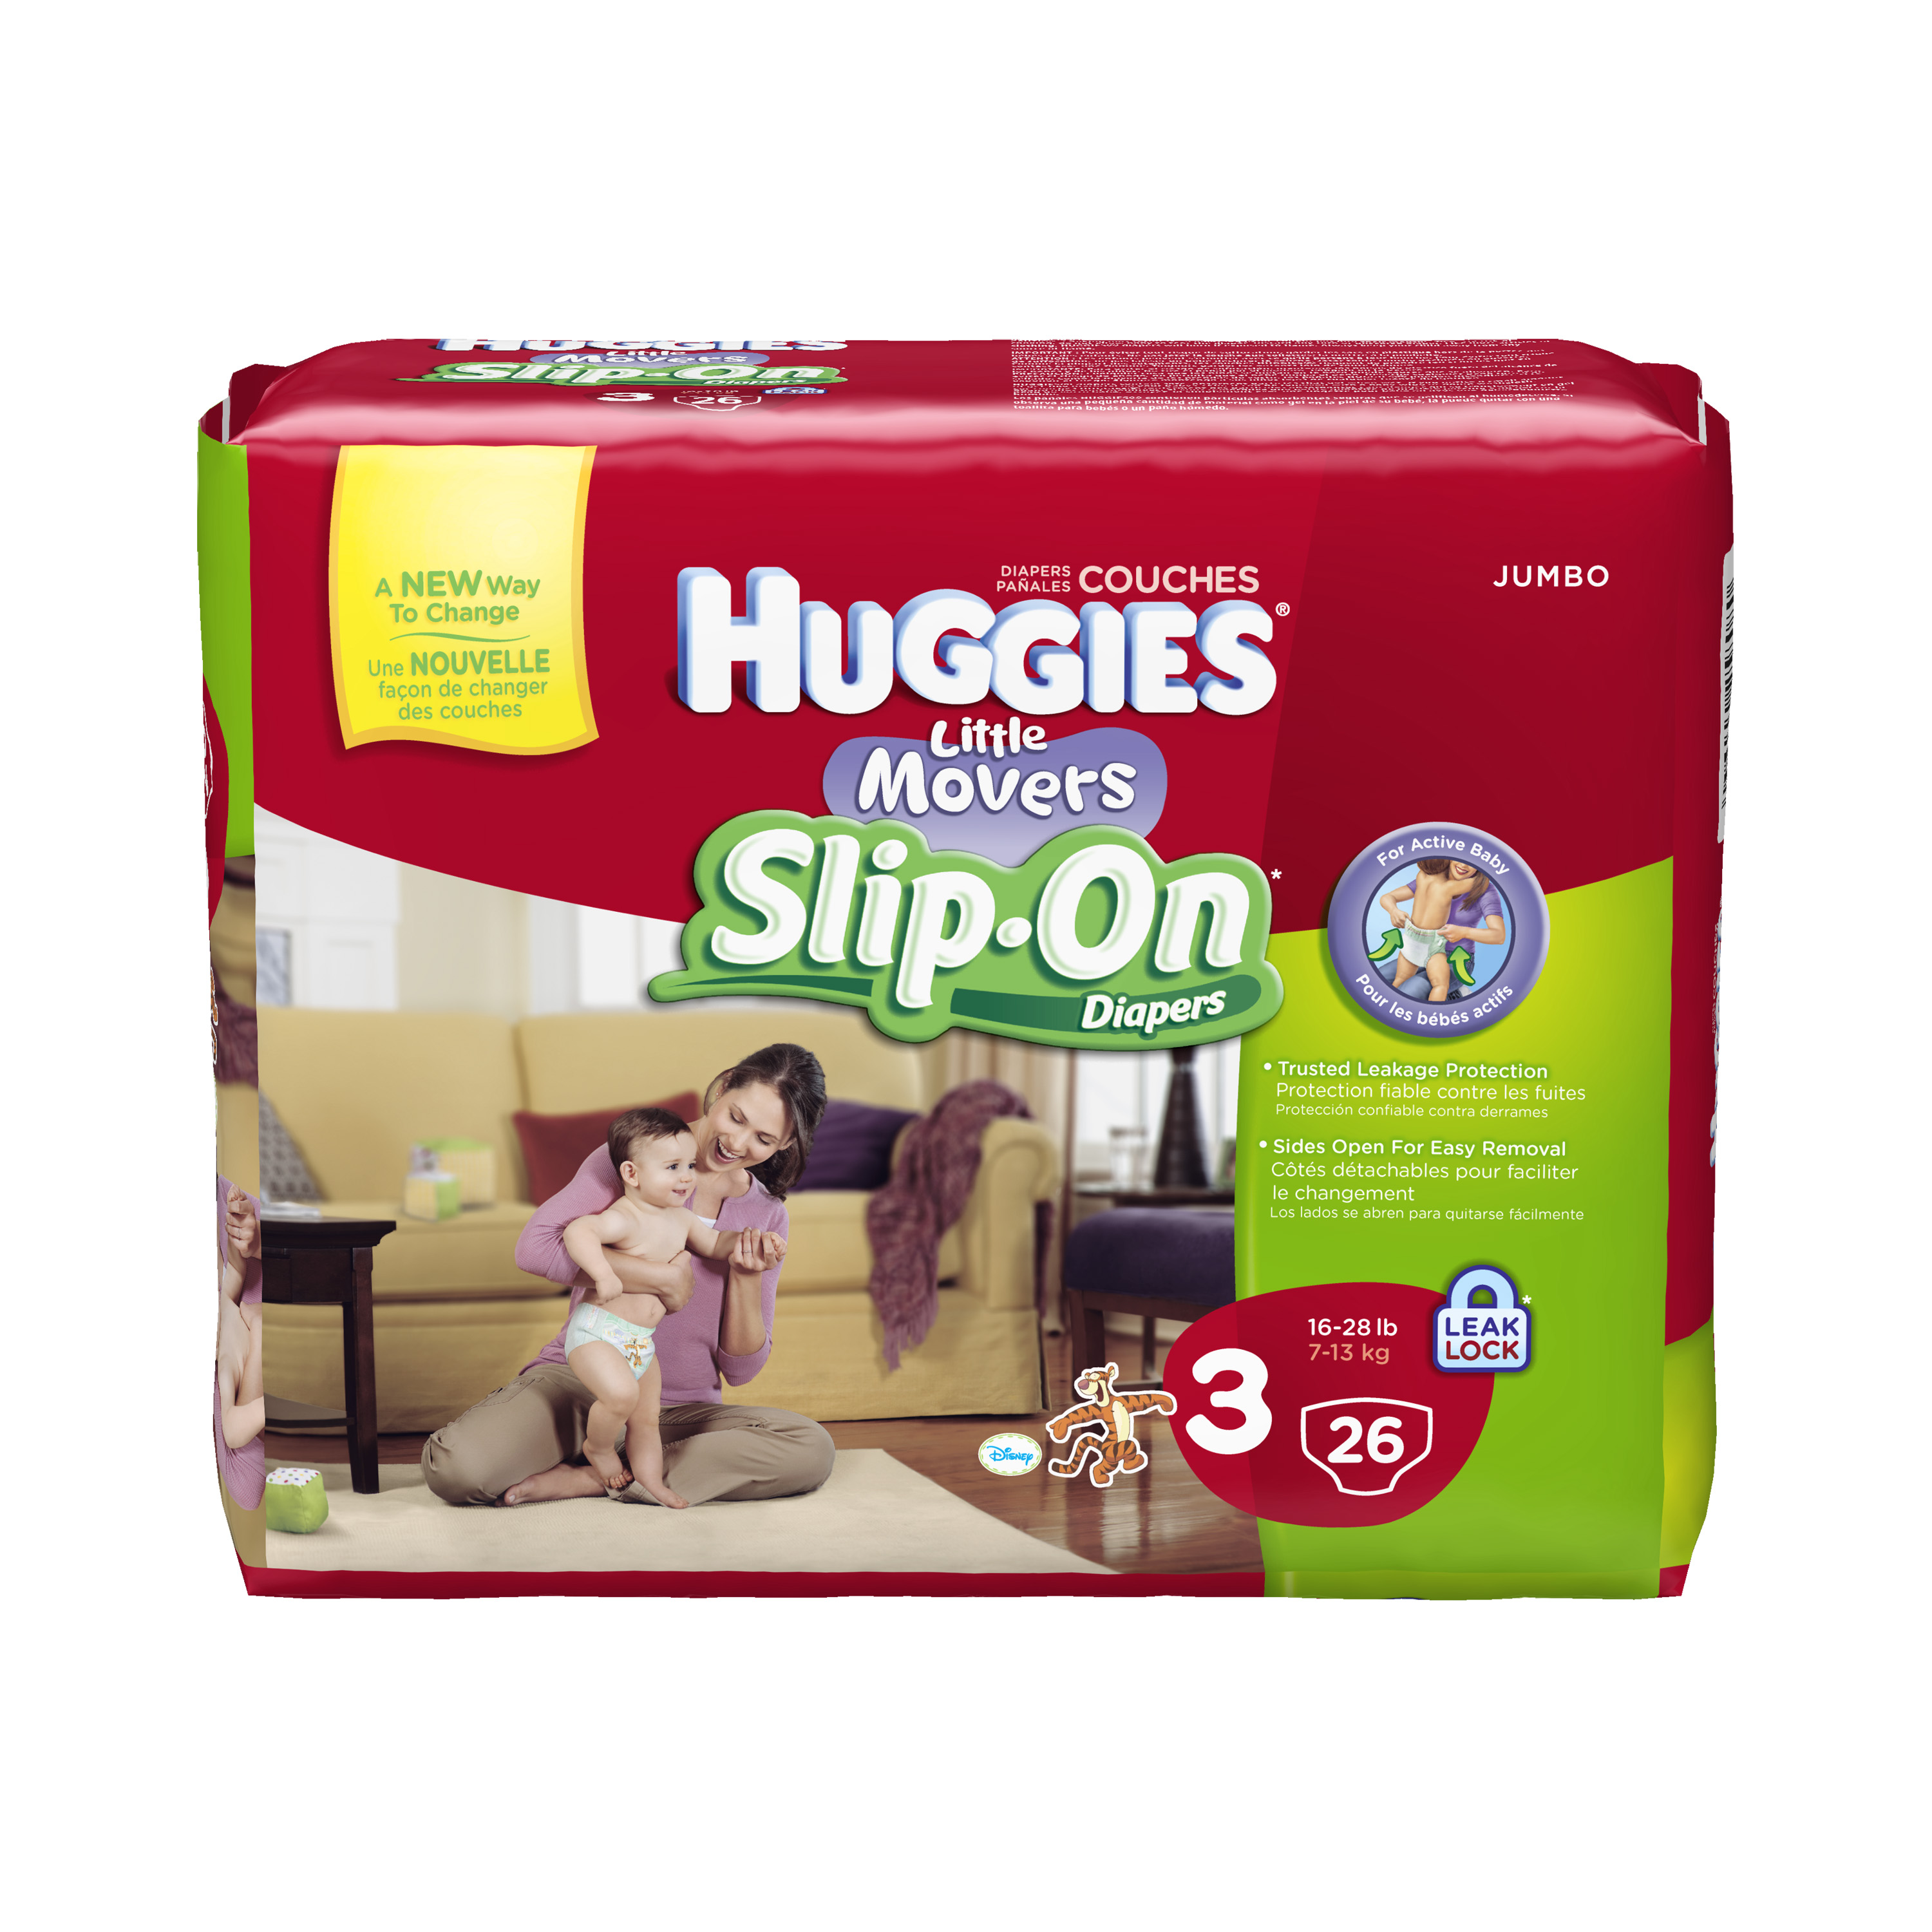 Little Movers® Diaper Pants slip on and off for faster changes. These slip-on diapers feature convenient finger tabs for quick and easy removal. Available in diaper sizes 3 - 6.